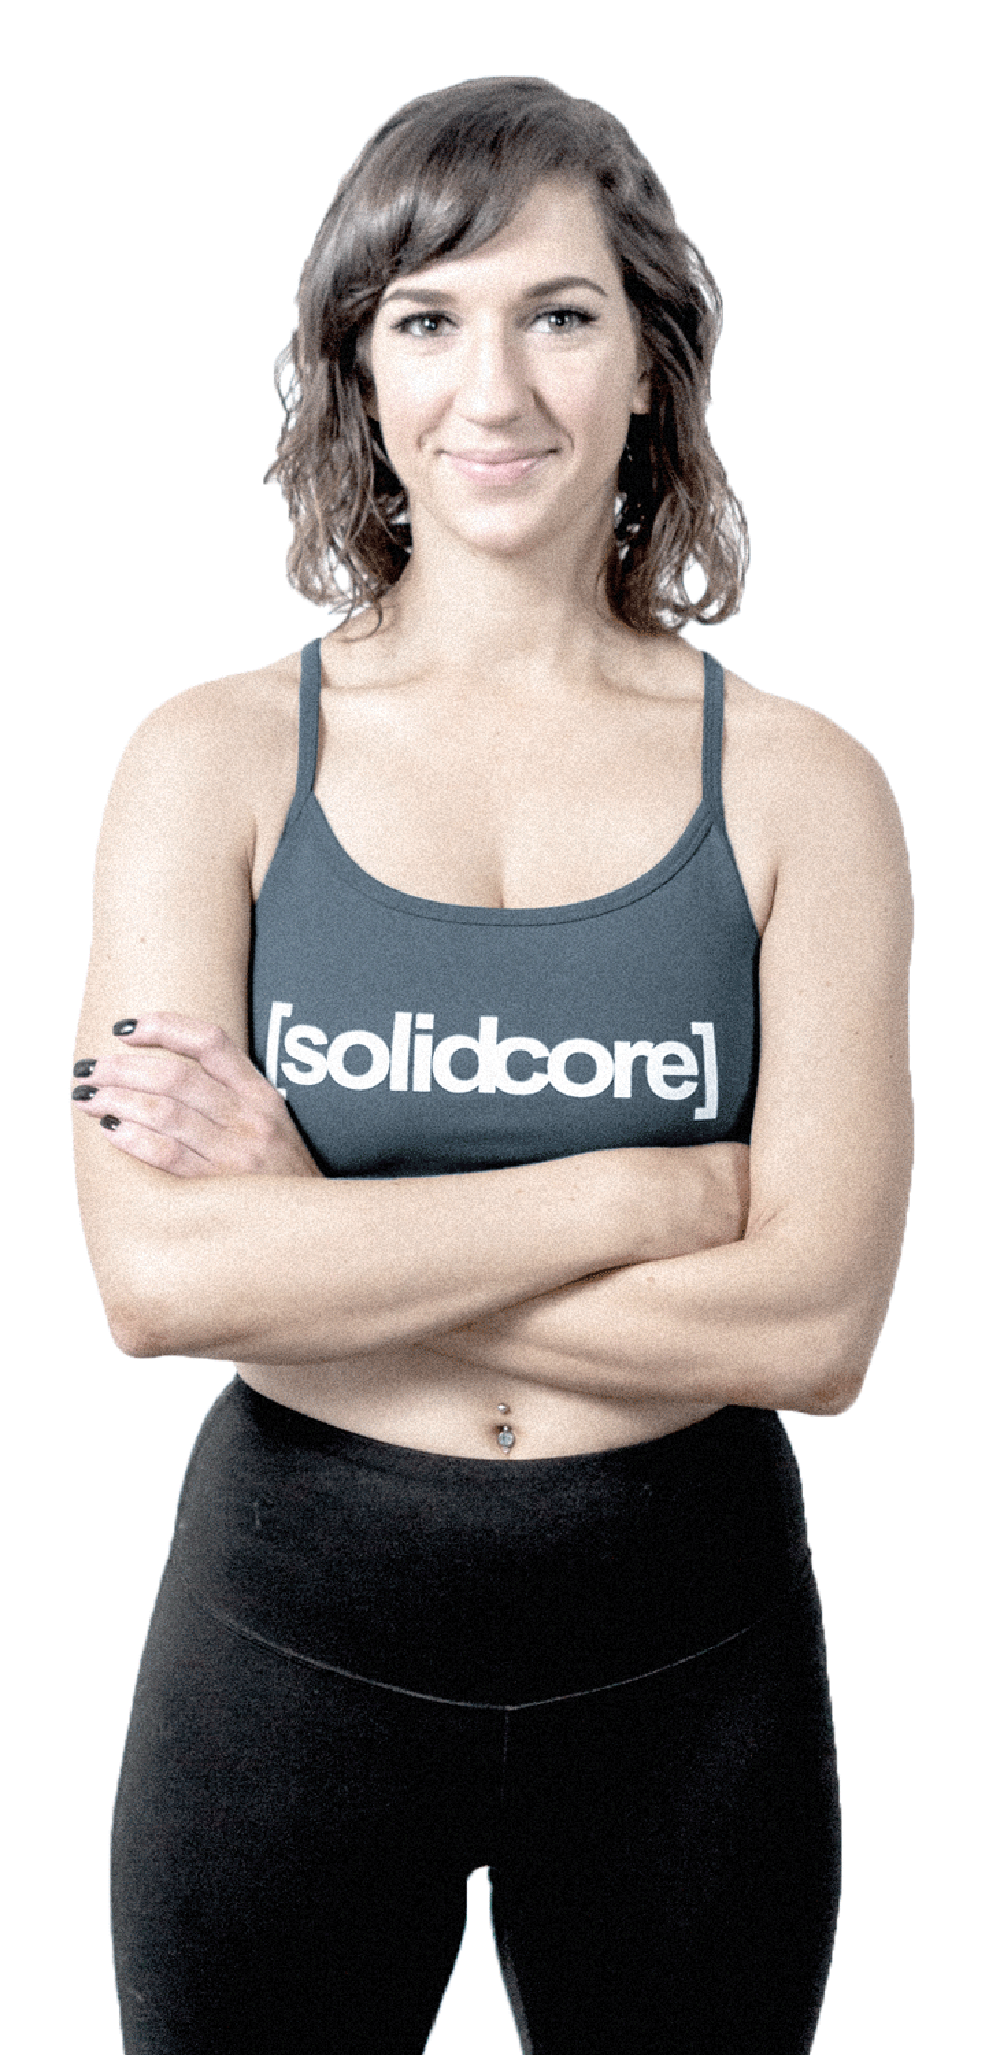 Pilates and bootcamp workouts redefined  solidcore  Reston